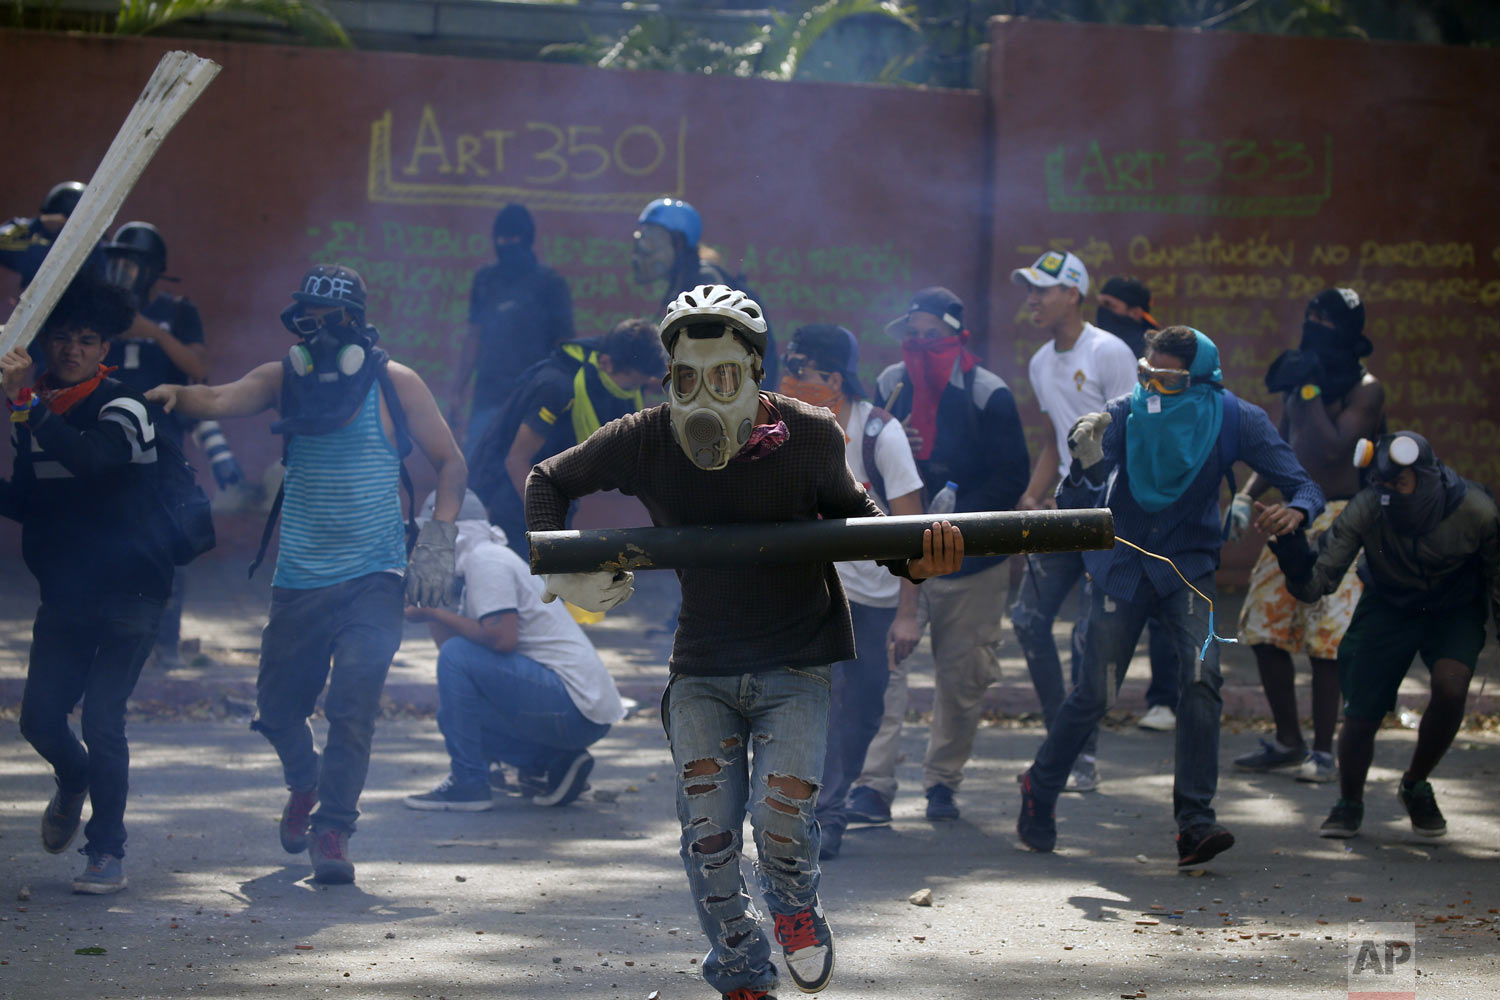 Anti-government protesters, one carrying a homemade mortar, take cover as security forces fire tear gas to disperse demonstrators in Caracas, Venezuela, Wednesday, May 1, 2019. Opposition leader Juan Guaidó called for Venezuelans to fill streets around the country Wednesday to demand President Nicolás Maduro's ouster. Maduro is also calling for his supporters to rally. (AP Photo/Fernando Llano)